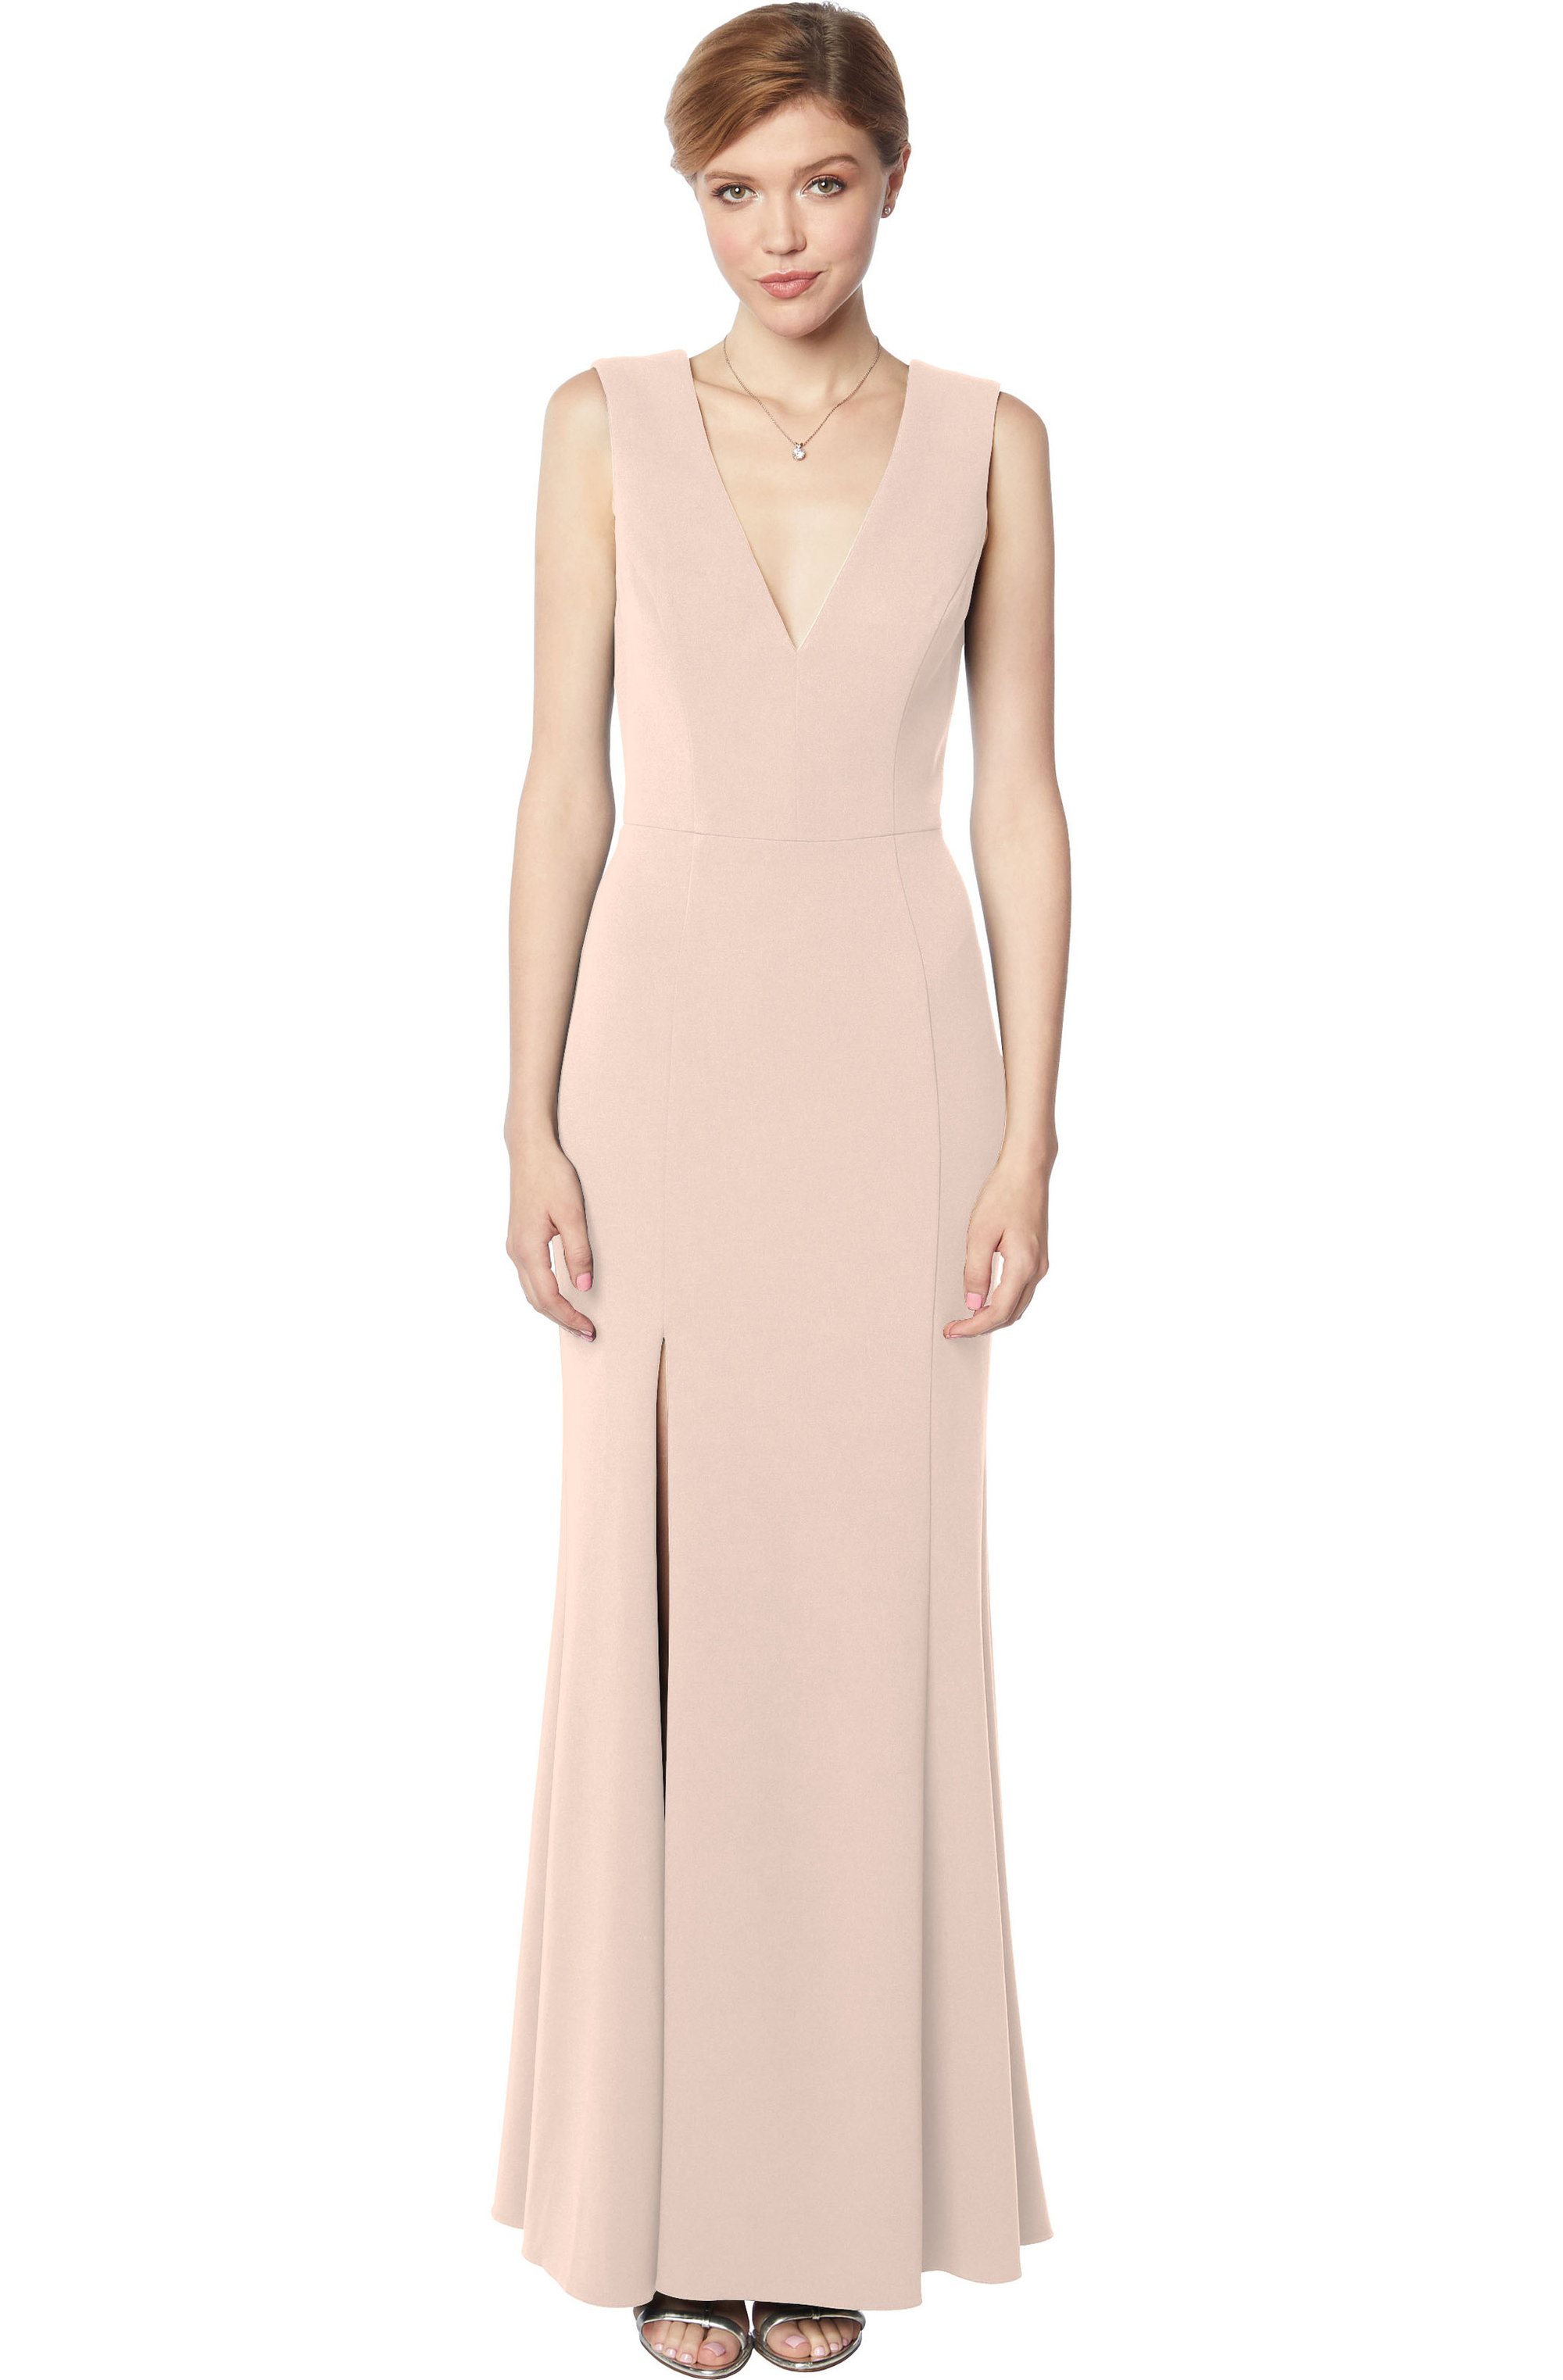 Bill Levkoff NUDE Stretch Crepe Sleeveless A-line gown, $210.00 Front